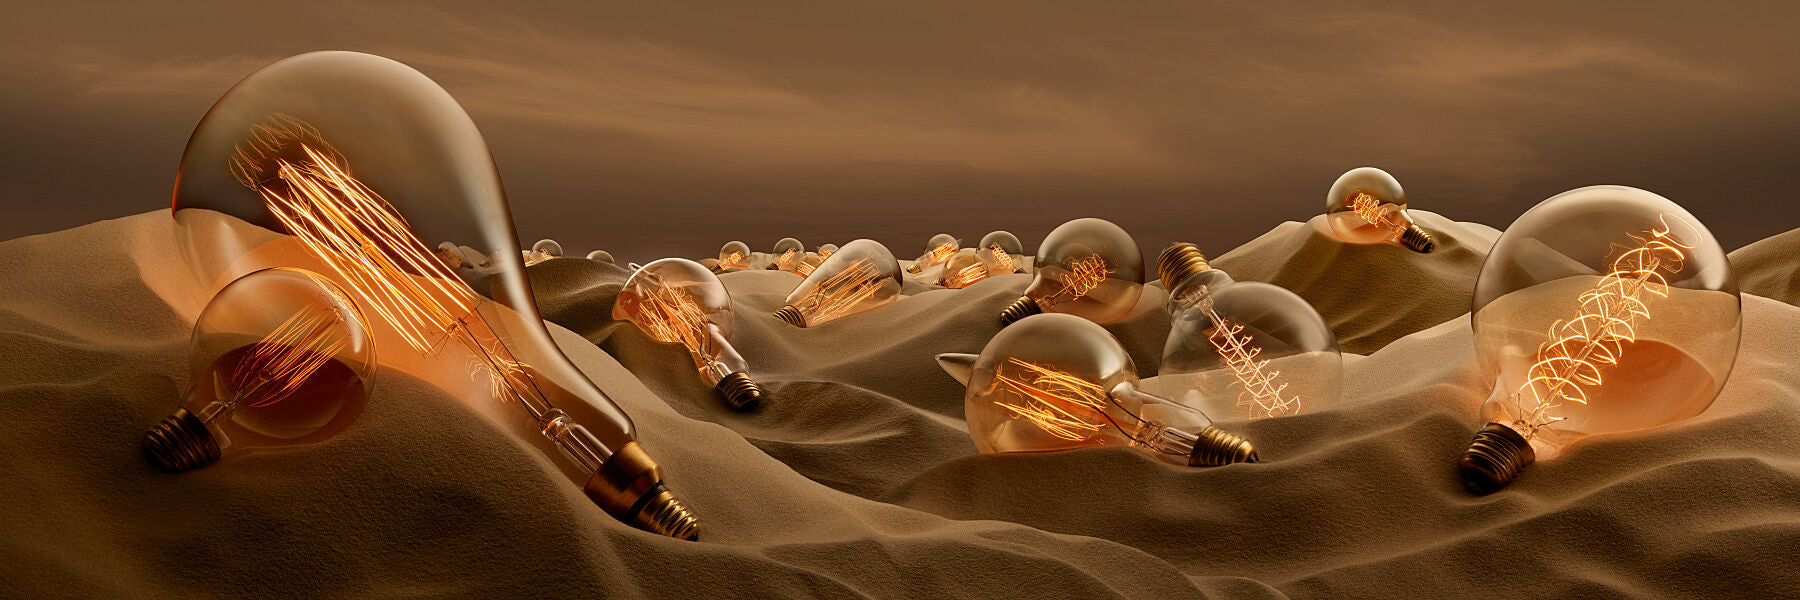 Lightbulb Desert